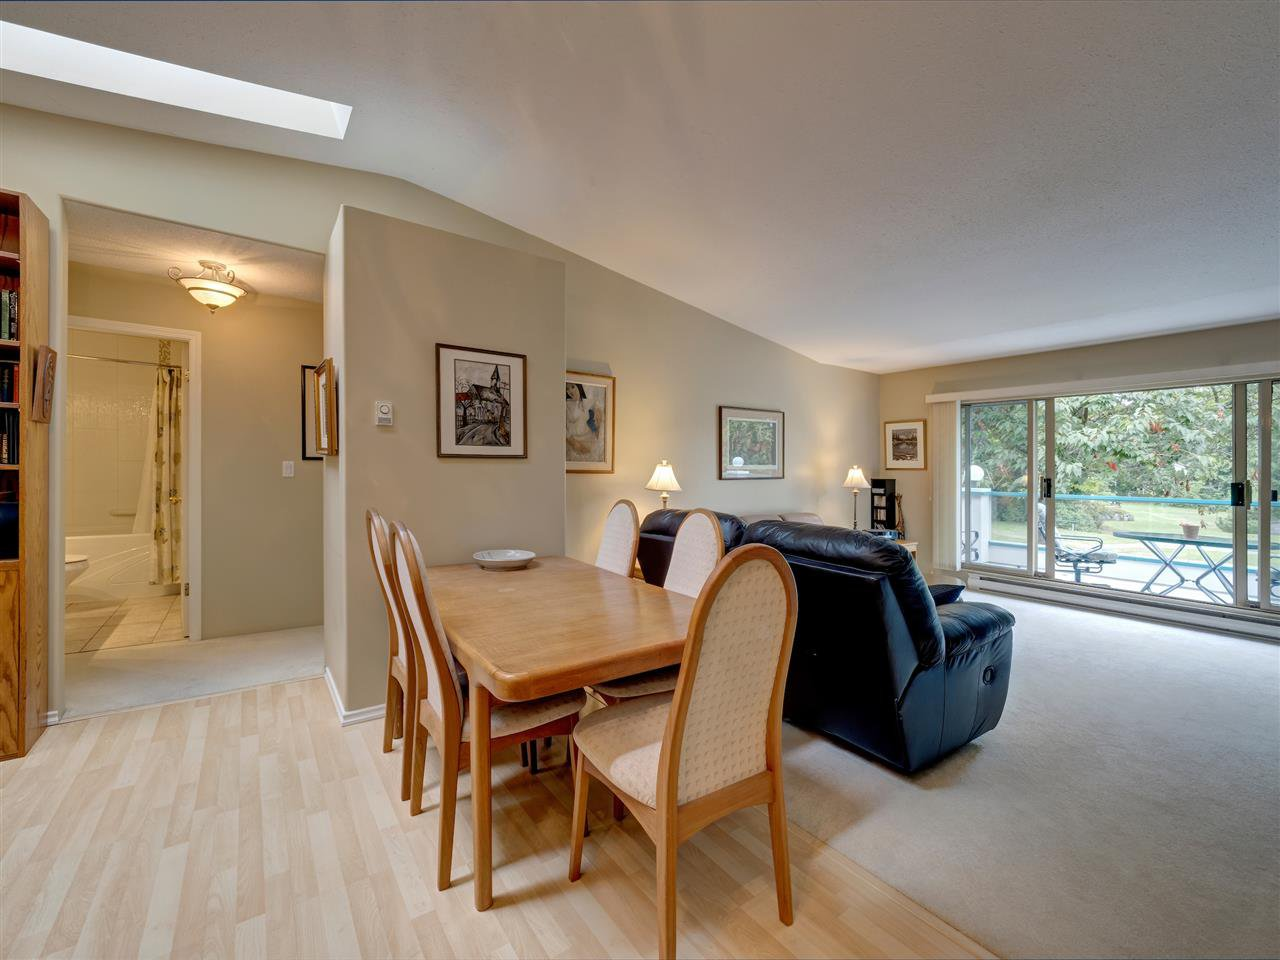 """Photo 2: Photos: 41 555 EAGLECREST Drive in Gibsons: Gibsons & Area Townhouse for sale in """"GEORGIA MIRAGE"""" (Sunshine Coast)  : MLS®# R2485008"""